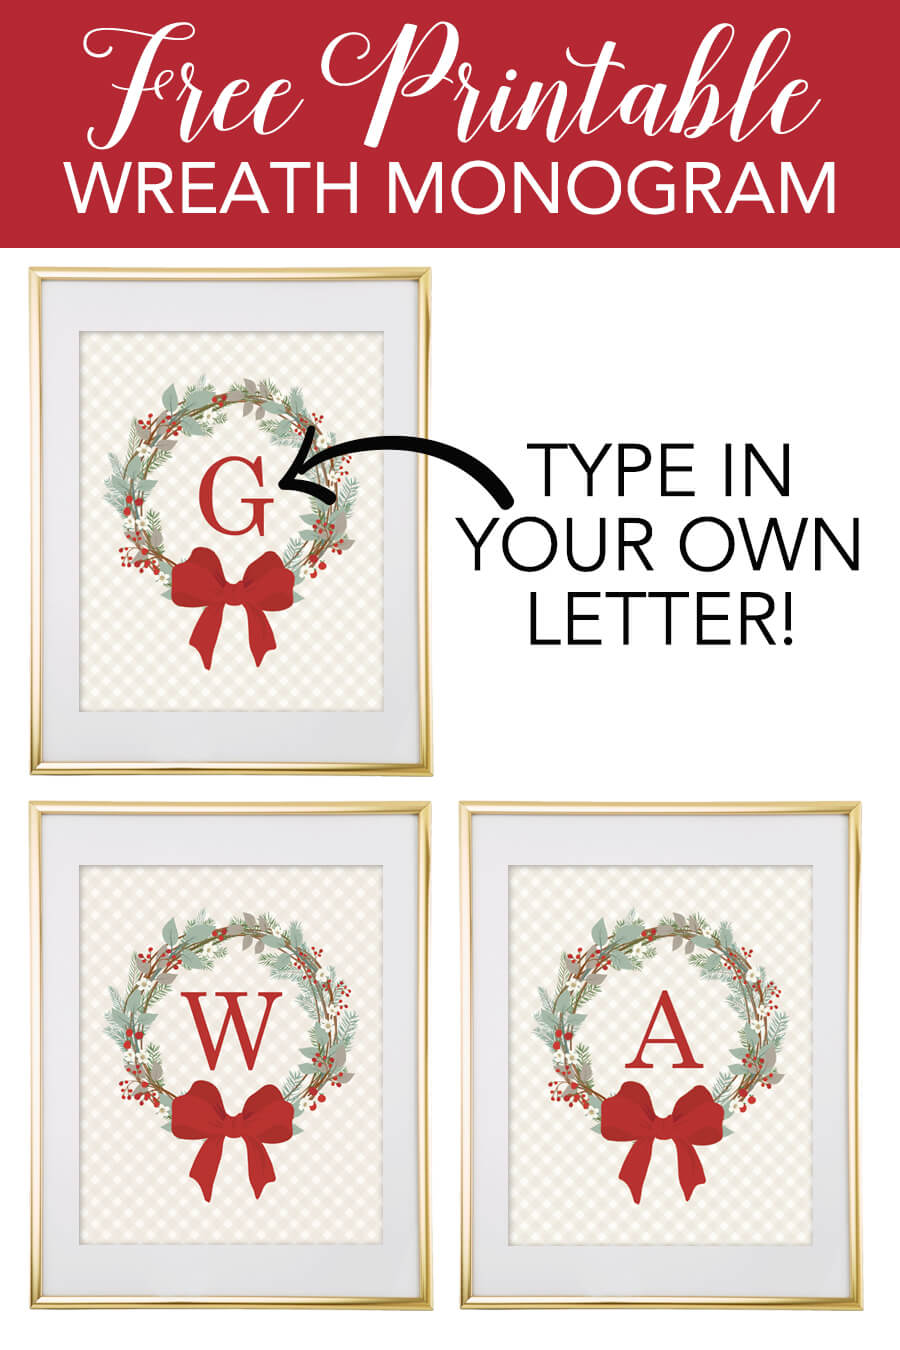 graphic regarding Free Printable Monogram known as Xmas Wreath Free of charge Monogram Template - Chicfetti Web site